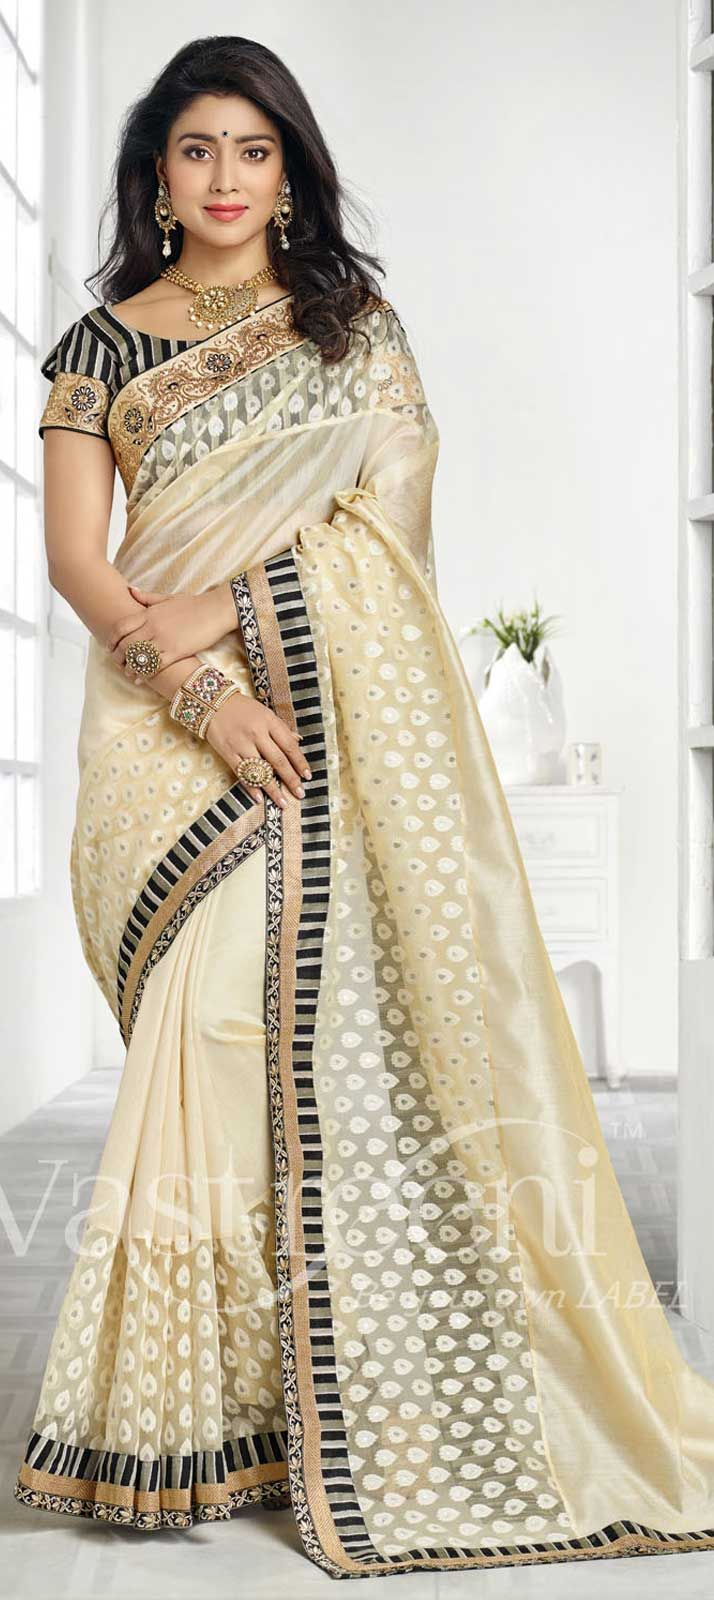 Bollywood Sarees Navels: : Beige And Brown Color Family Bollywood Sarees .